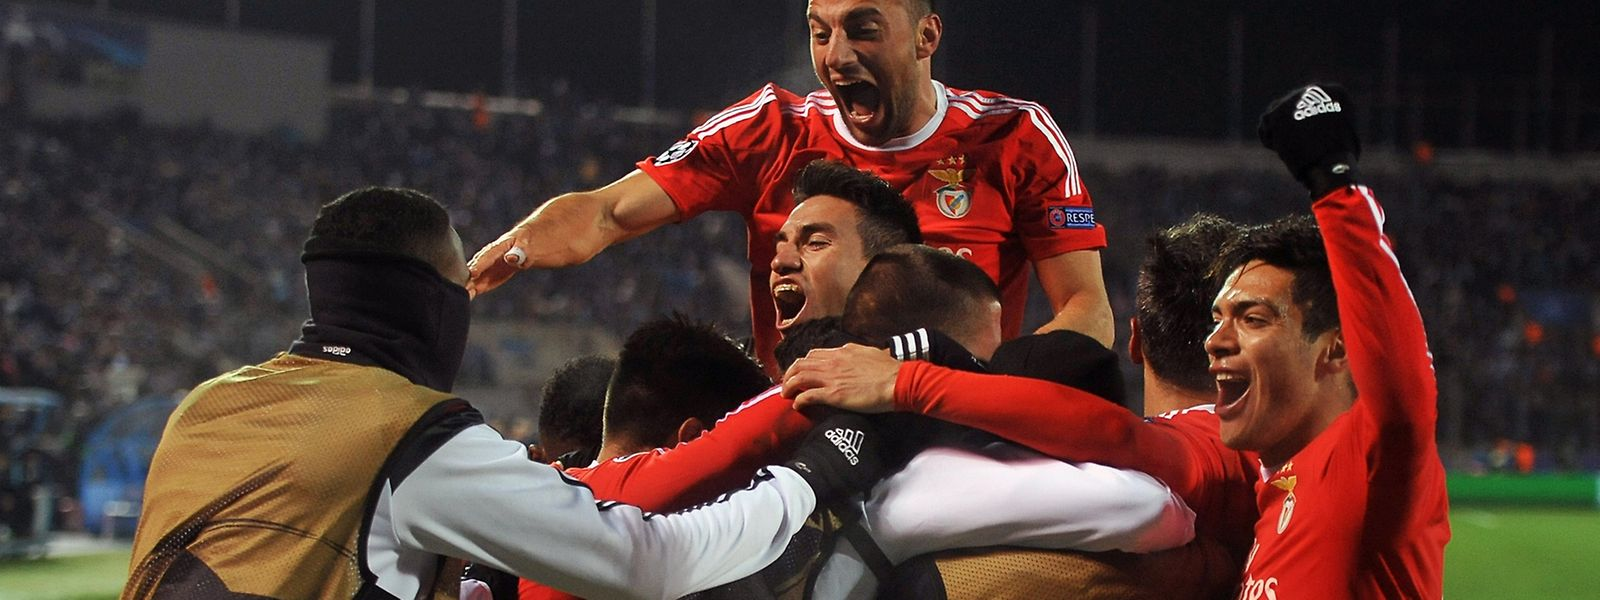 Benfica's players celebrate a goal during the second-leg round of 16 UEFA Champions League football match FC Zenit vs SL Benfica at the Petrovsky stadium in St. Petersburg on March 9, 2016. AFP PHOTO / OLGA MALTSEVA